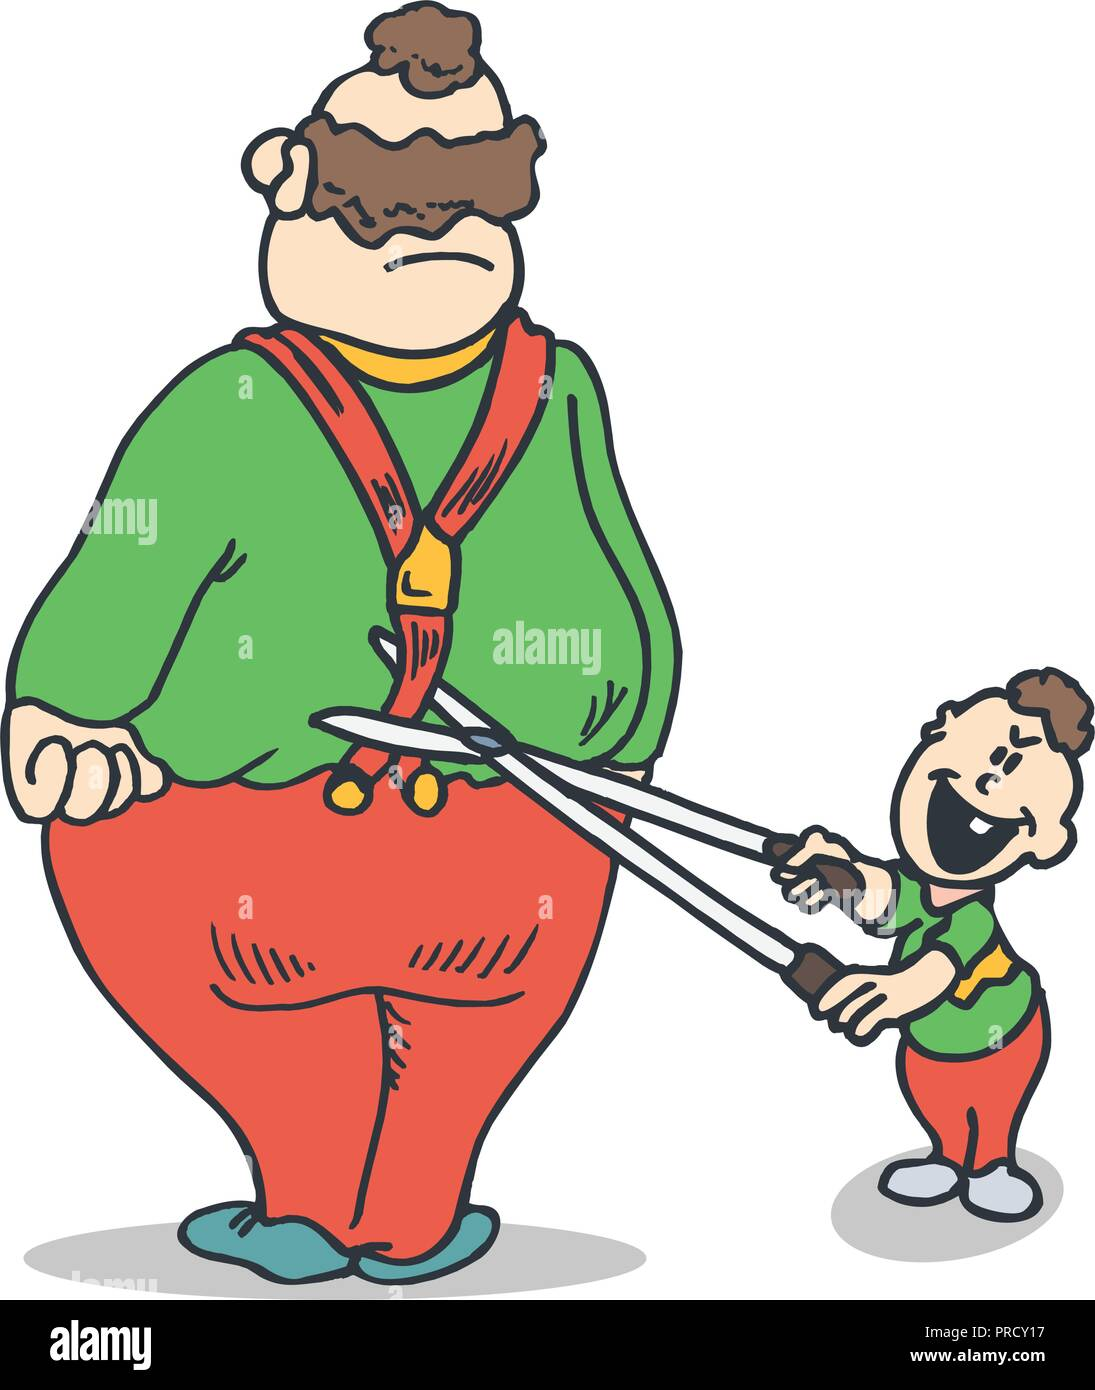 Dad and son jokes. Practical Jokes clipart concept. Illustration vector - Stock Image